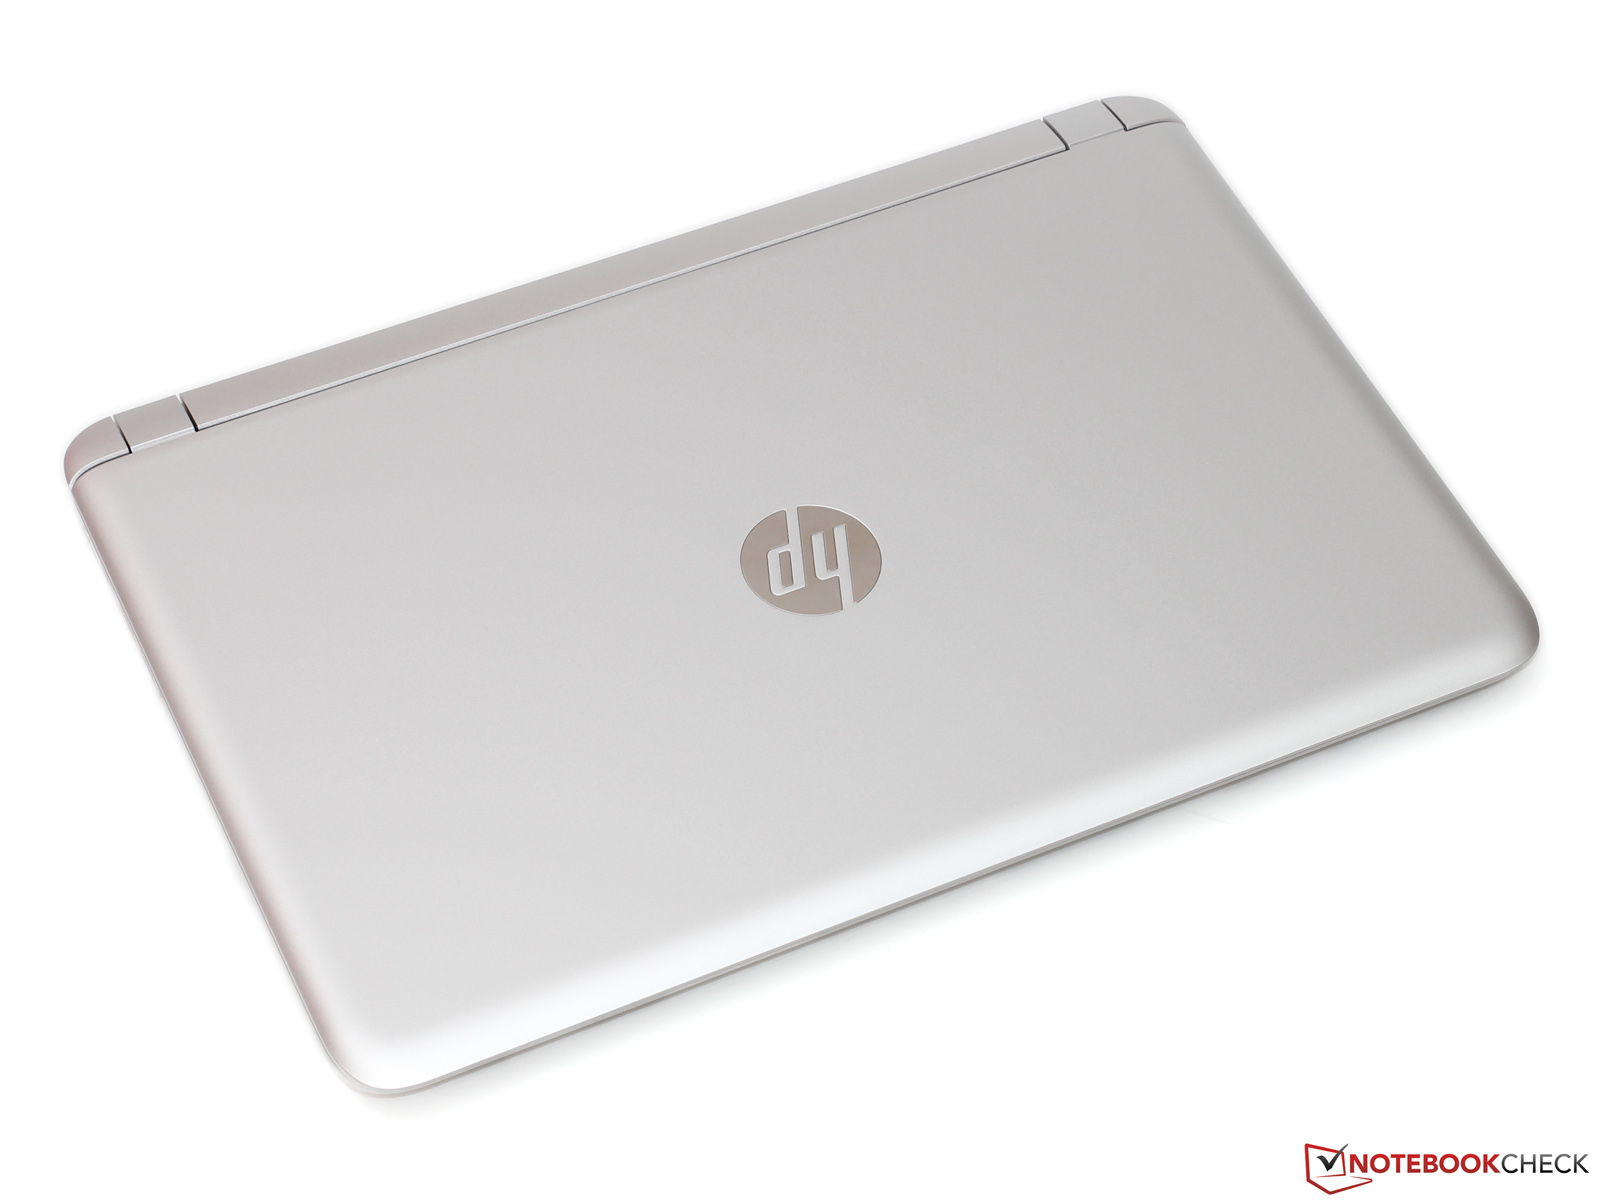 HP 2000-365DX Synaptics TouchPad Drivers (2019)